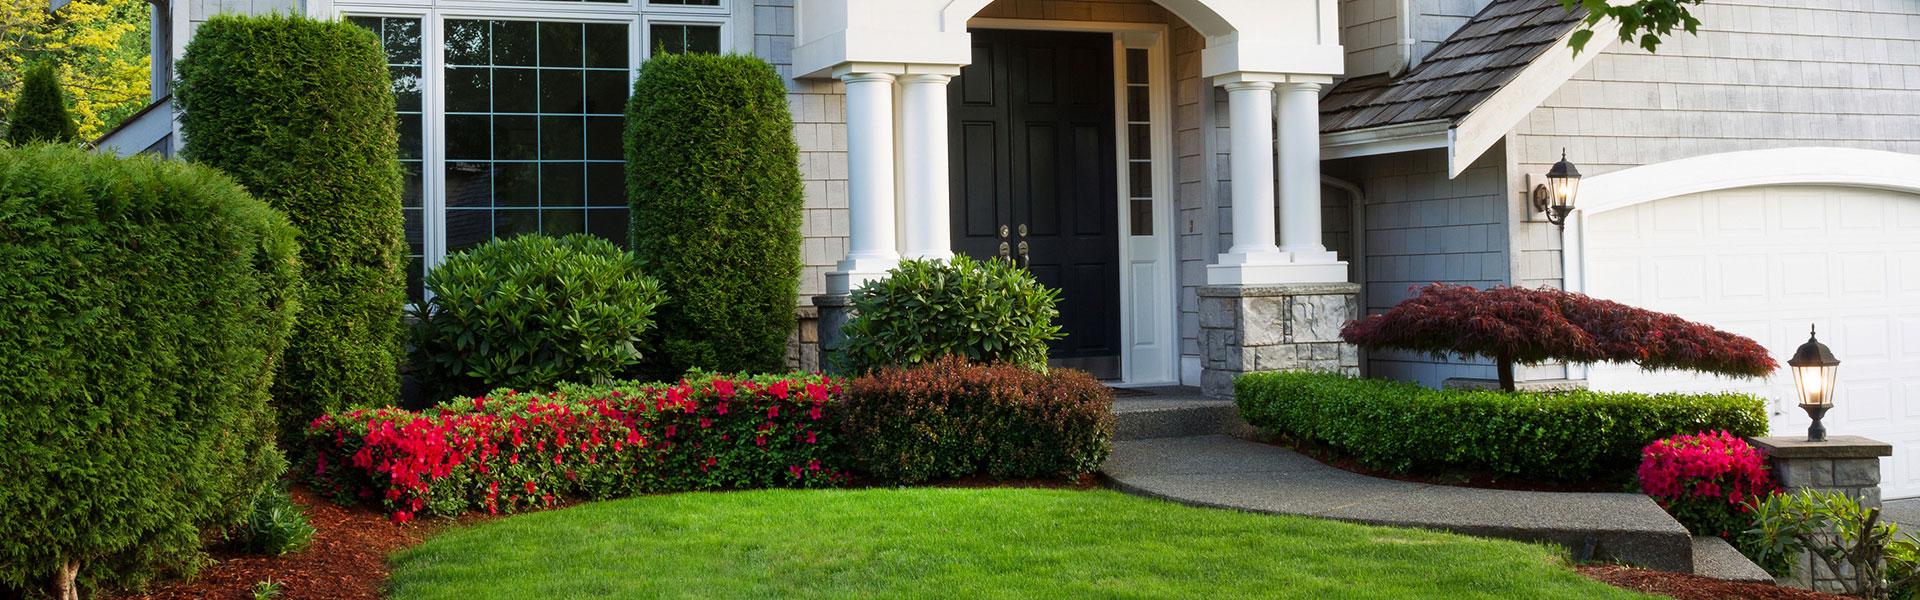 all seasons landscaping waukegan il landscaping company